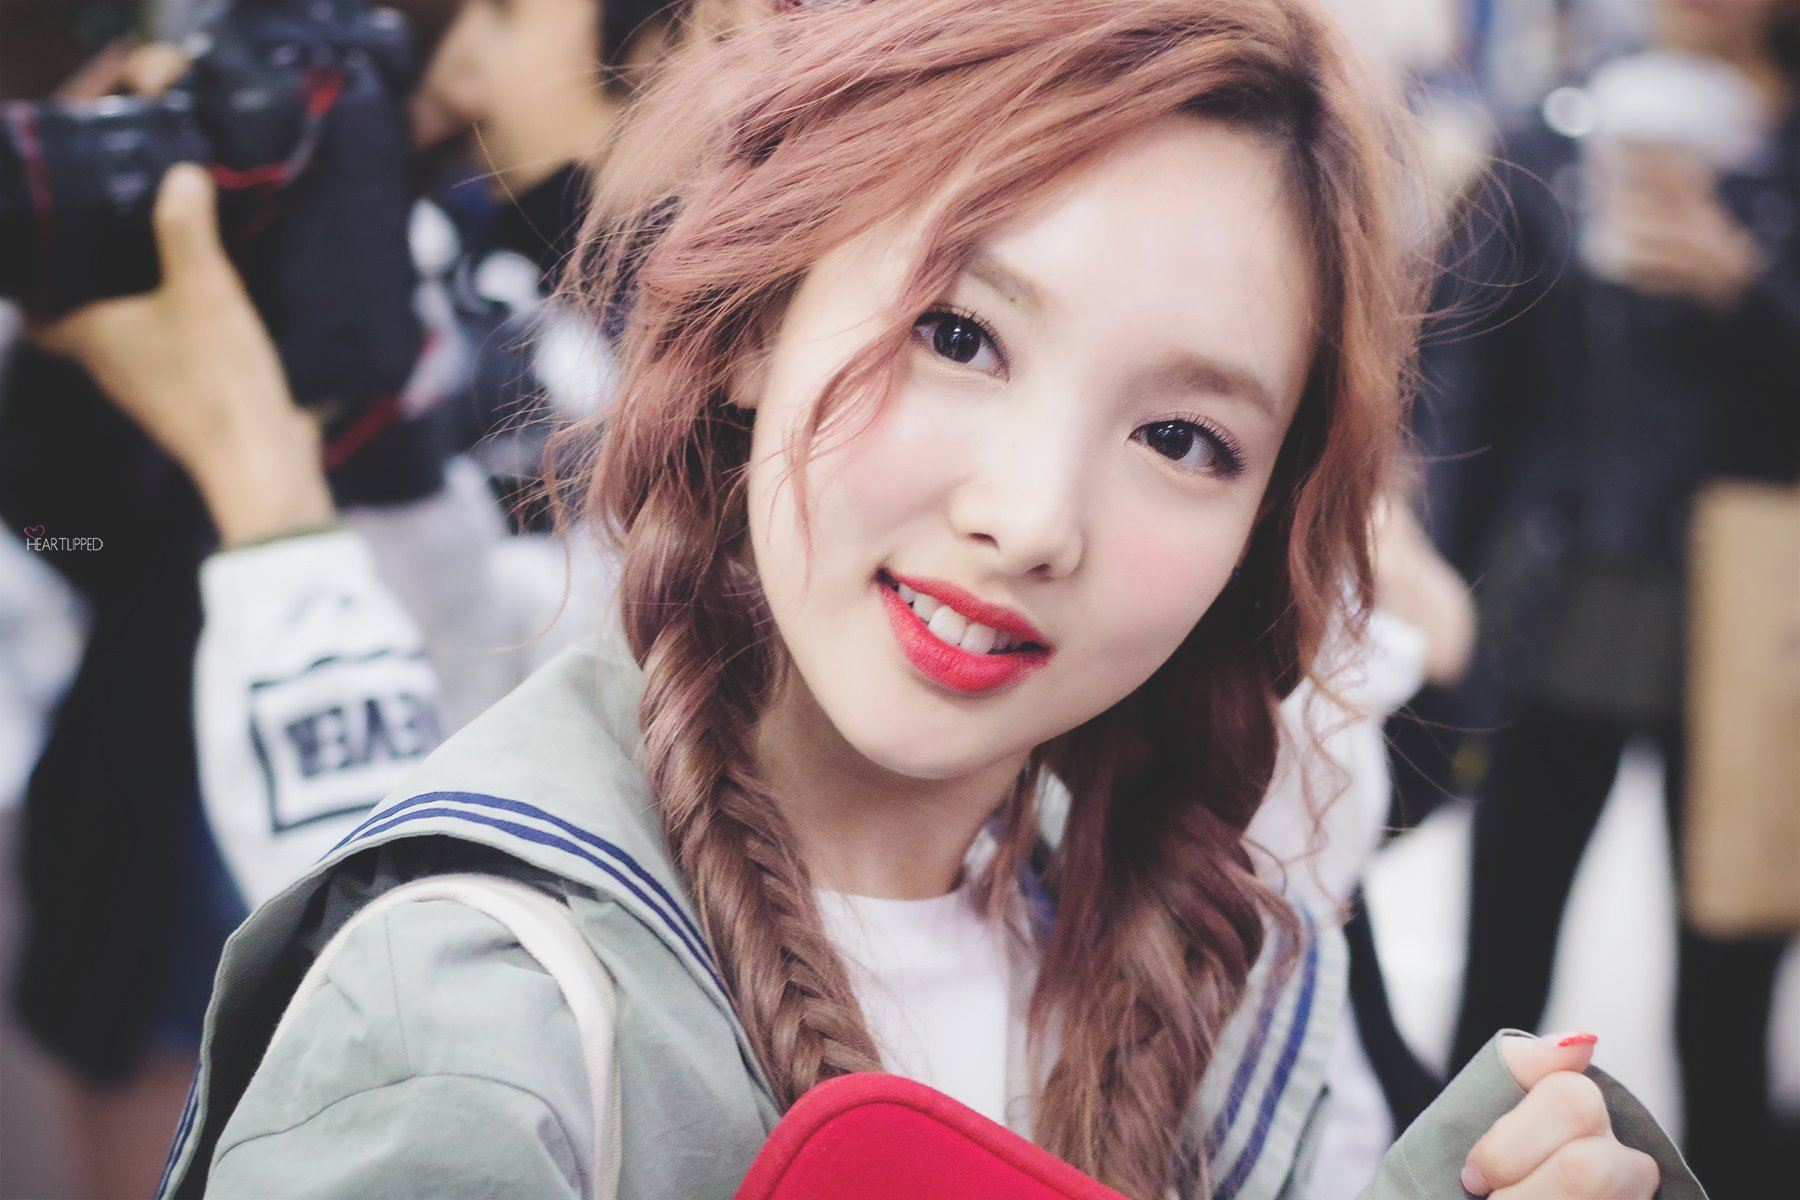 Dahyun Twice Beautiful Girl Wallpaper Twice Nayeon Just Dyed Her Hair Pink Here S What She Look